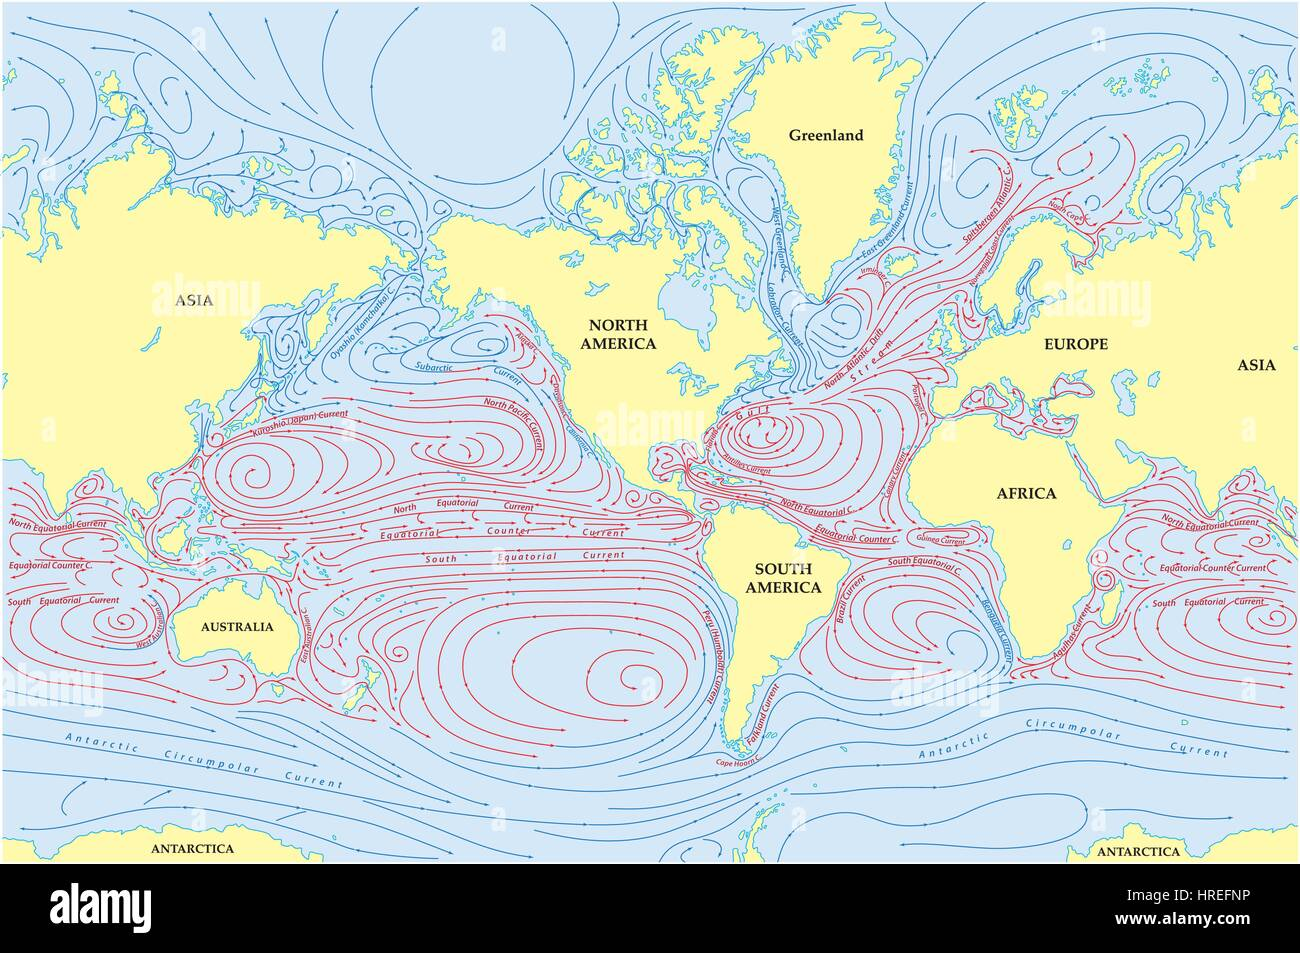 Vector world map of all sea currents stock vector art illustration vector world map of all sea currents gumiabroncs Gallery